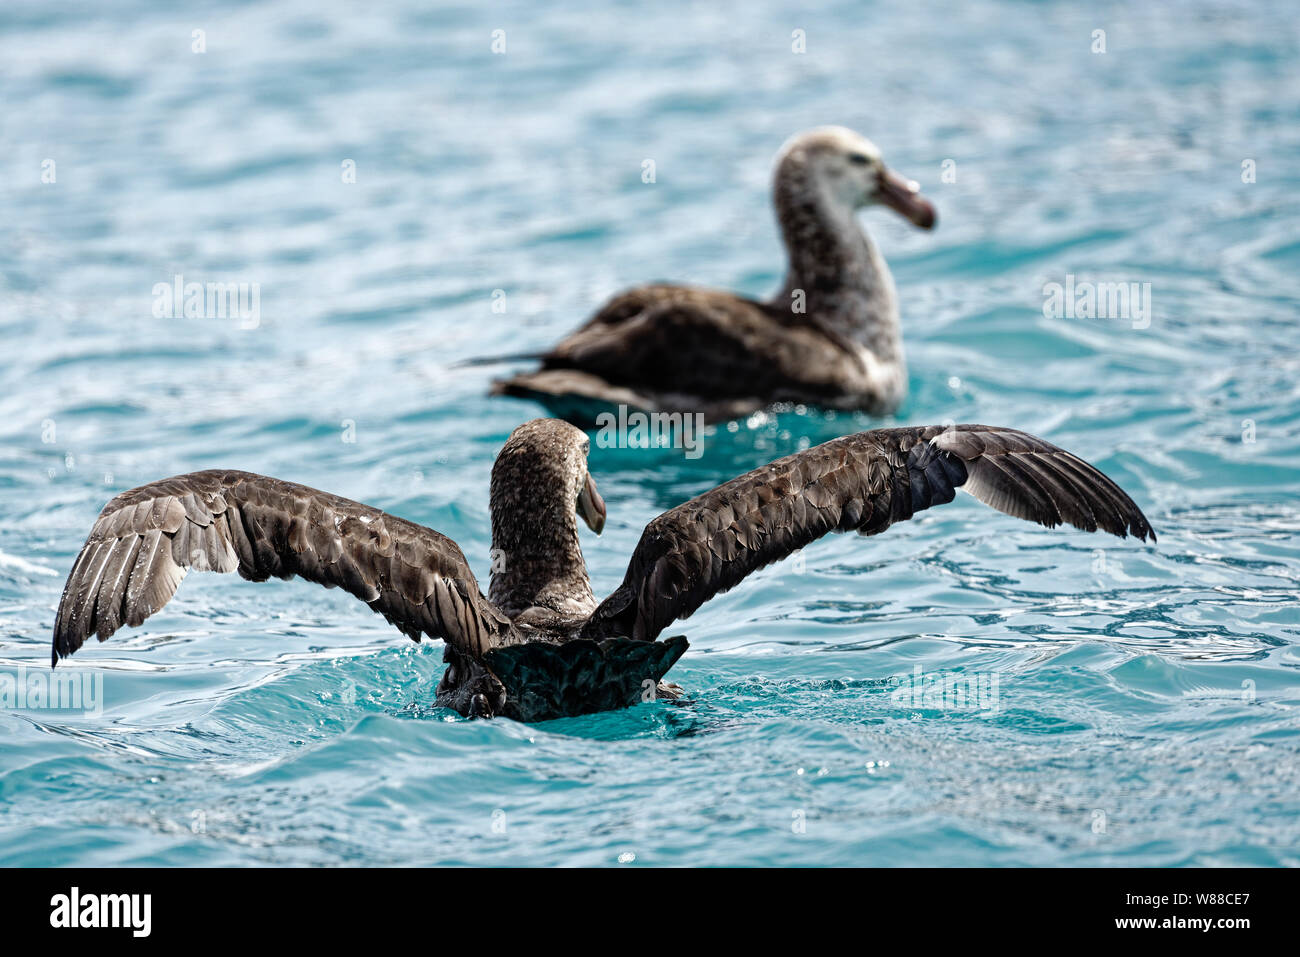 Southern Giant Petrel (Macronectes Giganteus) with extended wings swims in the South Atlantic behind a second Giant Petrel, South Georgia, South Georg Stock Photo